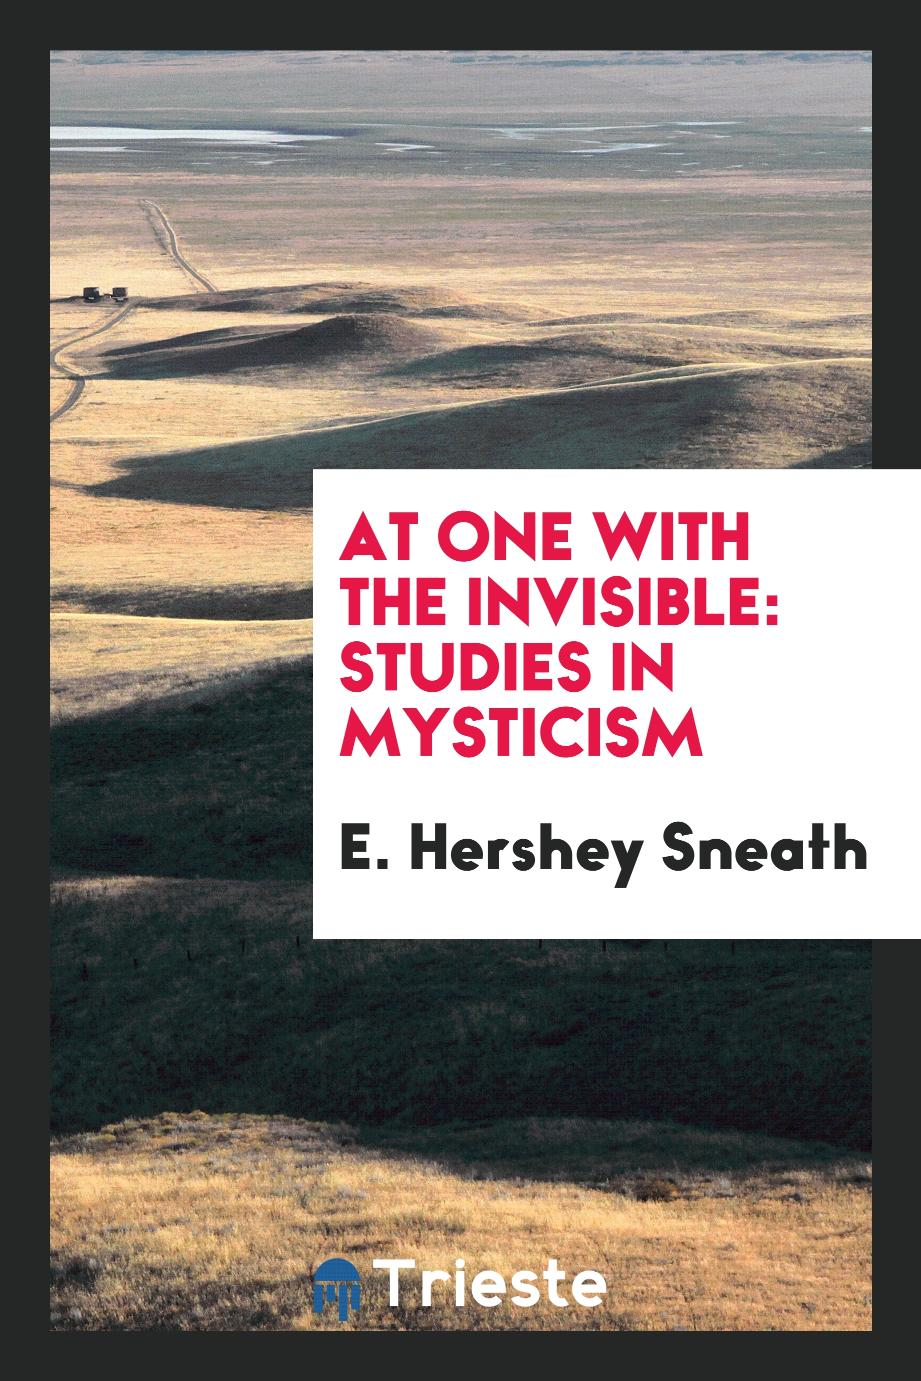 At One with the Invisible: Studies in Mysticism